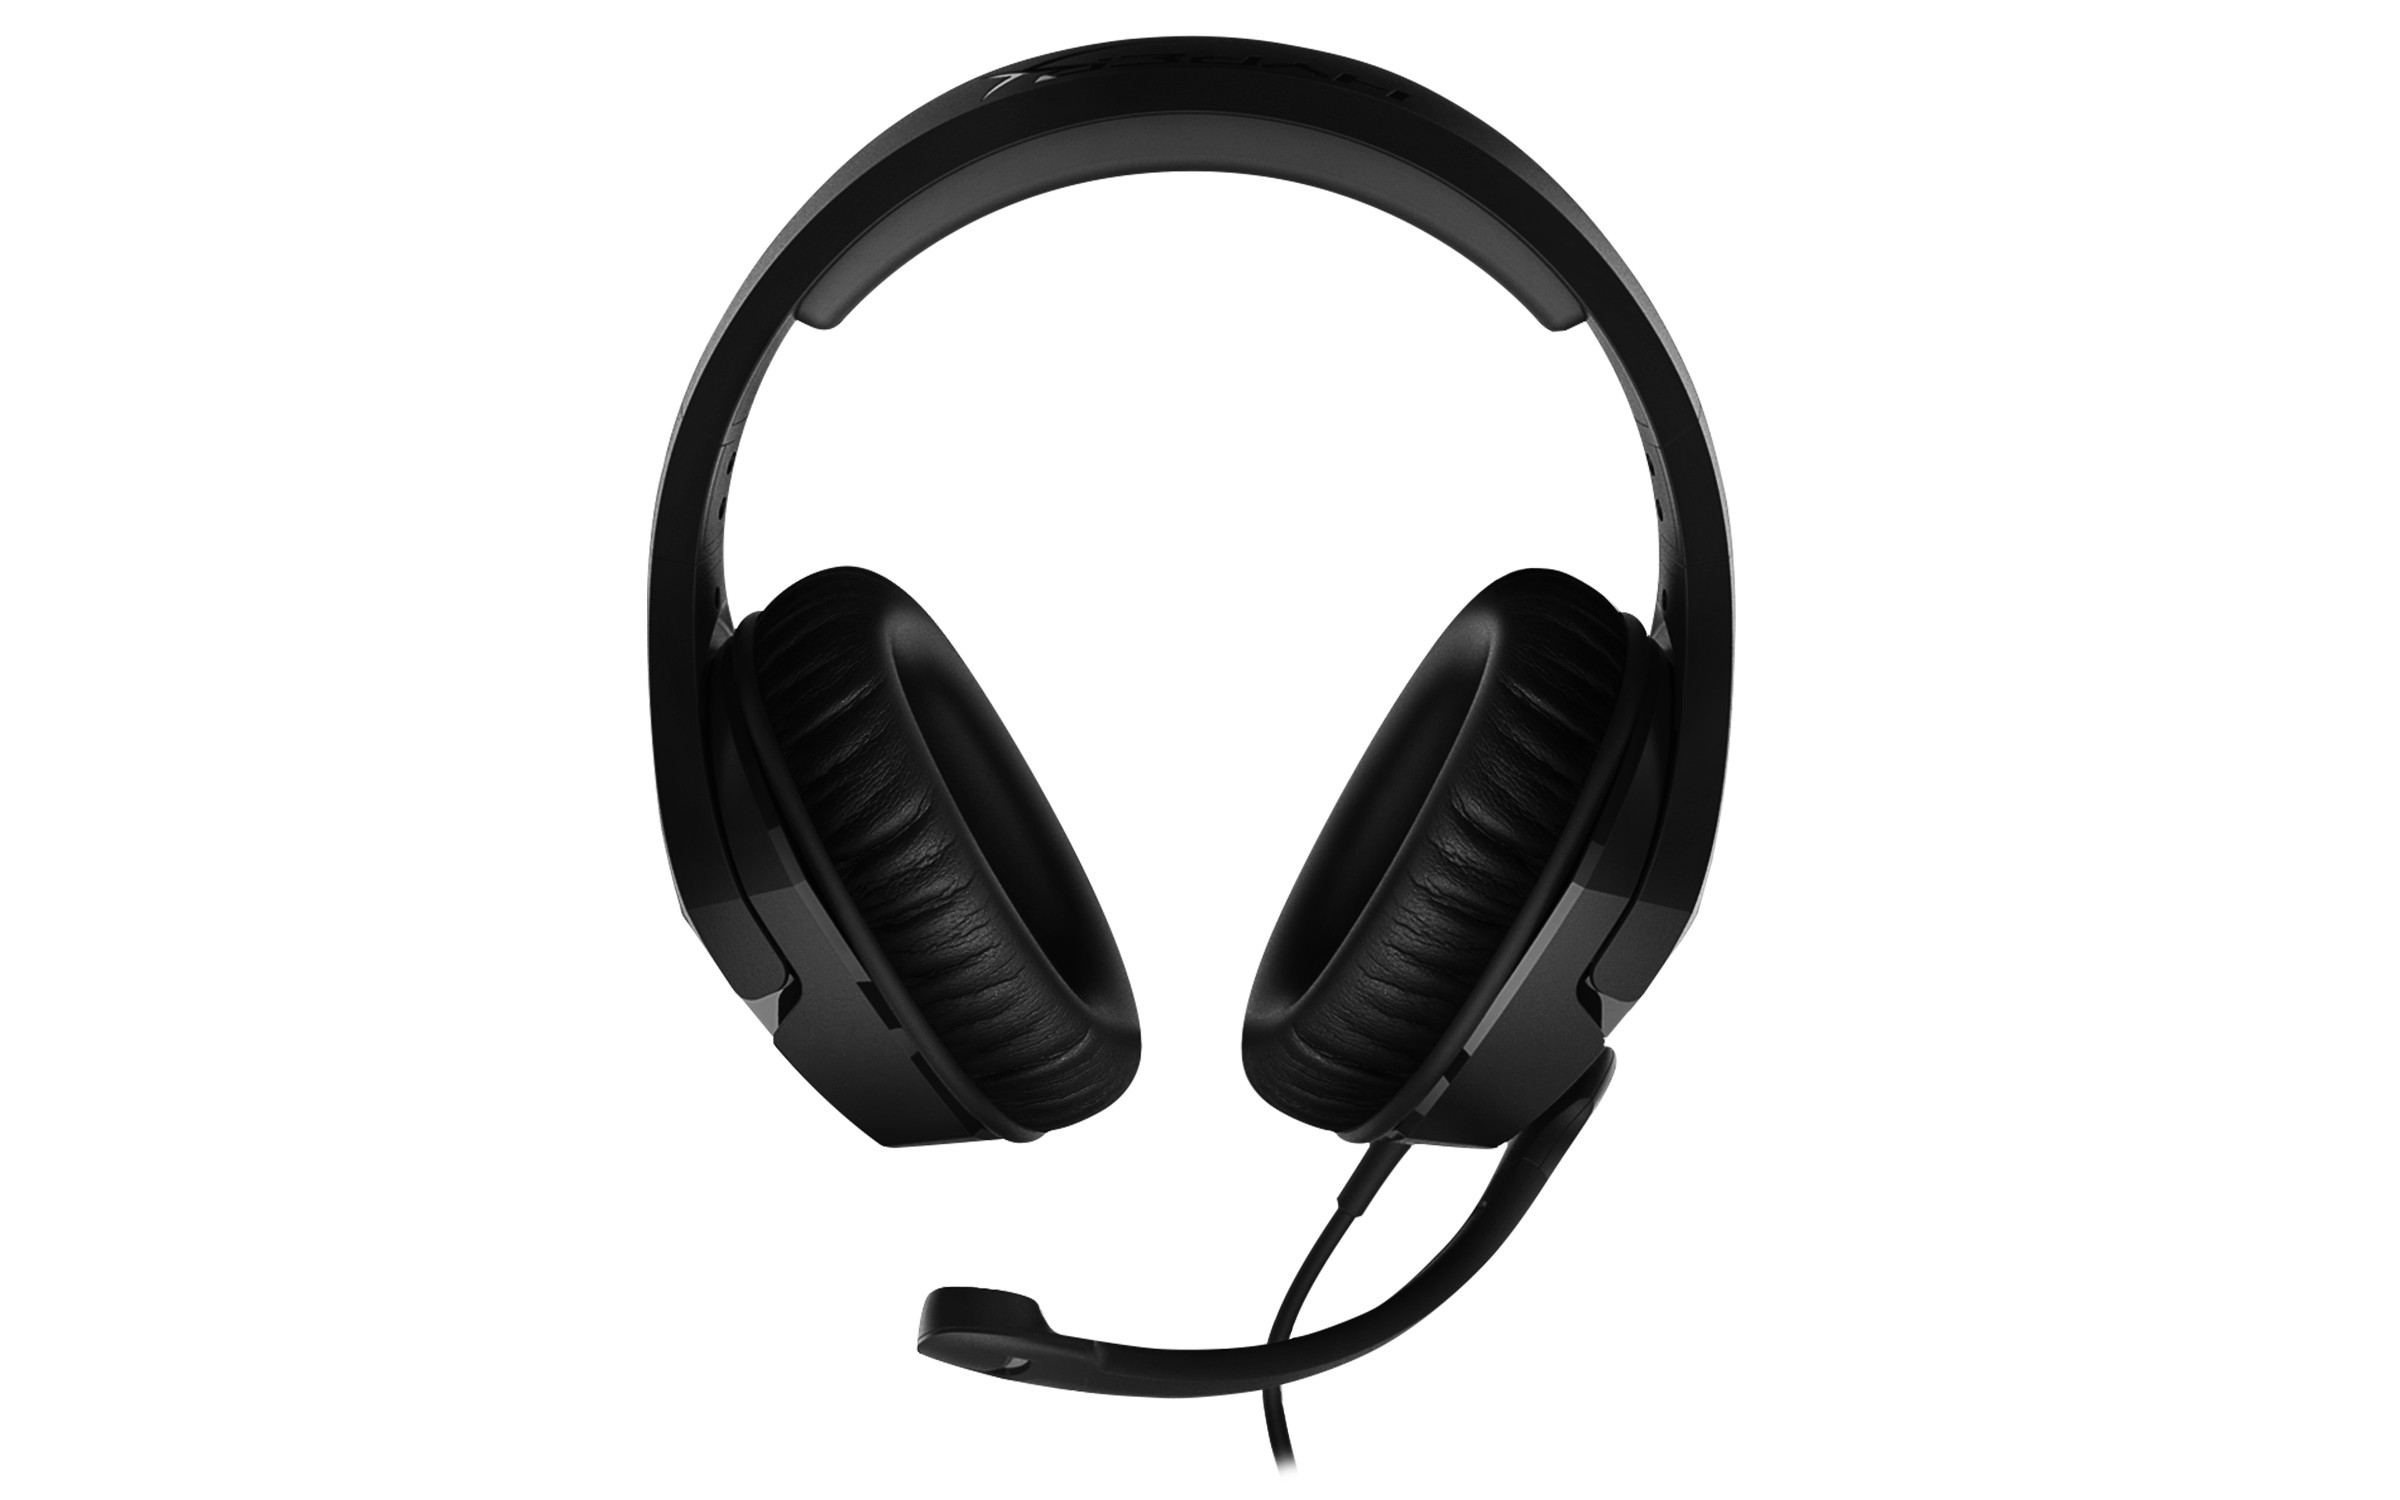 Kind of lining can you expect on the kingston hyperx cloud ii headset - Advertisements